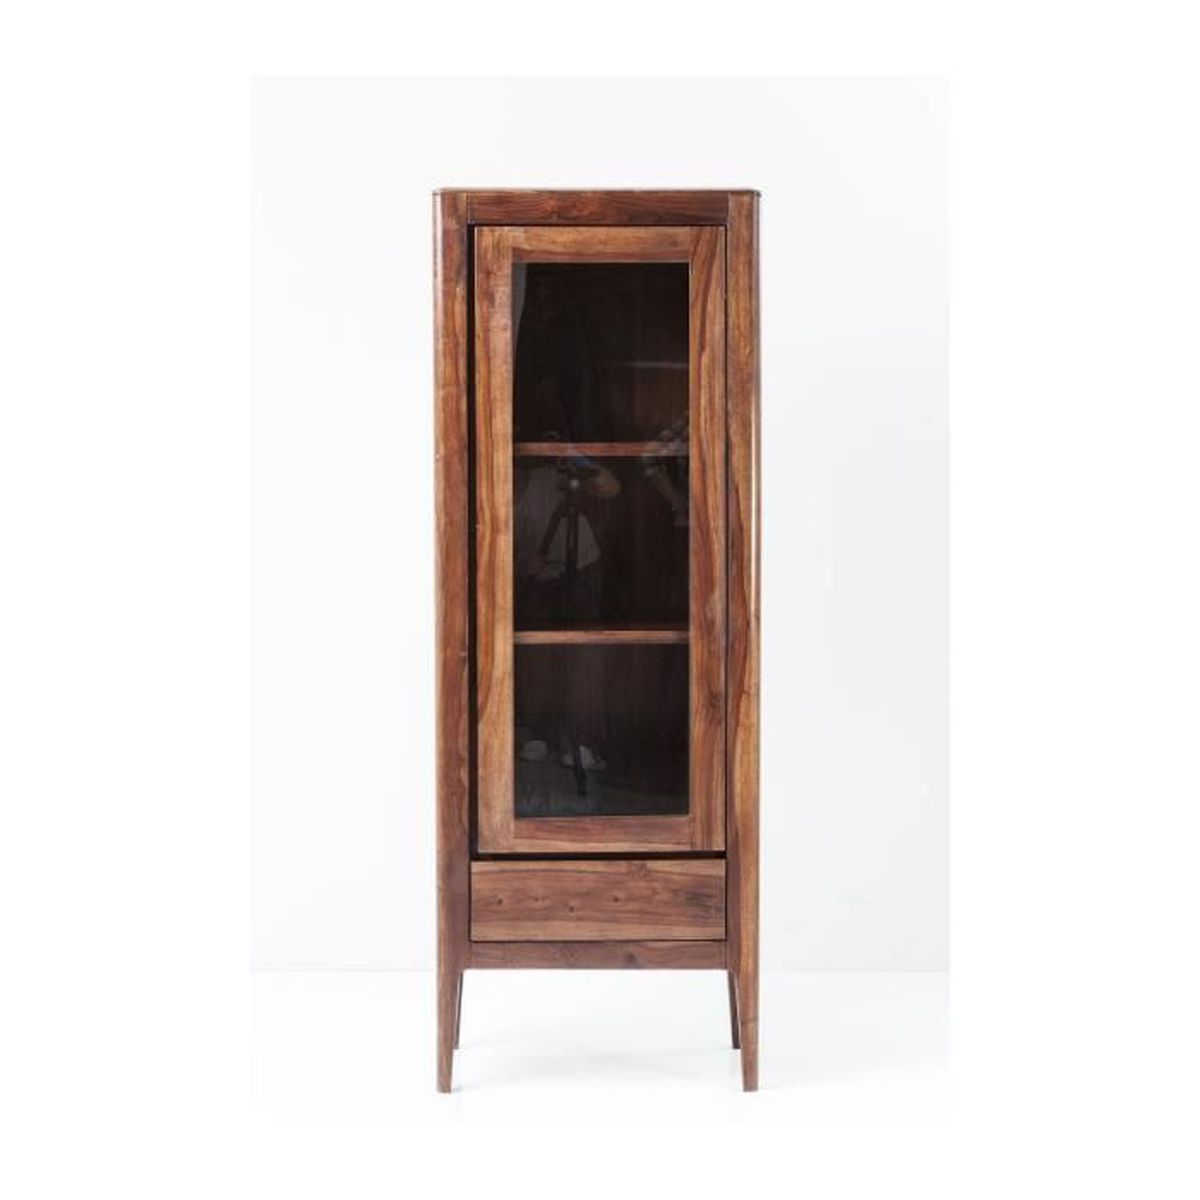 vitrine brooklyn walnut kare design achat vente biblioth que vitrine brooklyn walnut kar. Black Bedroom Furniture Sets. Home Design Ideas